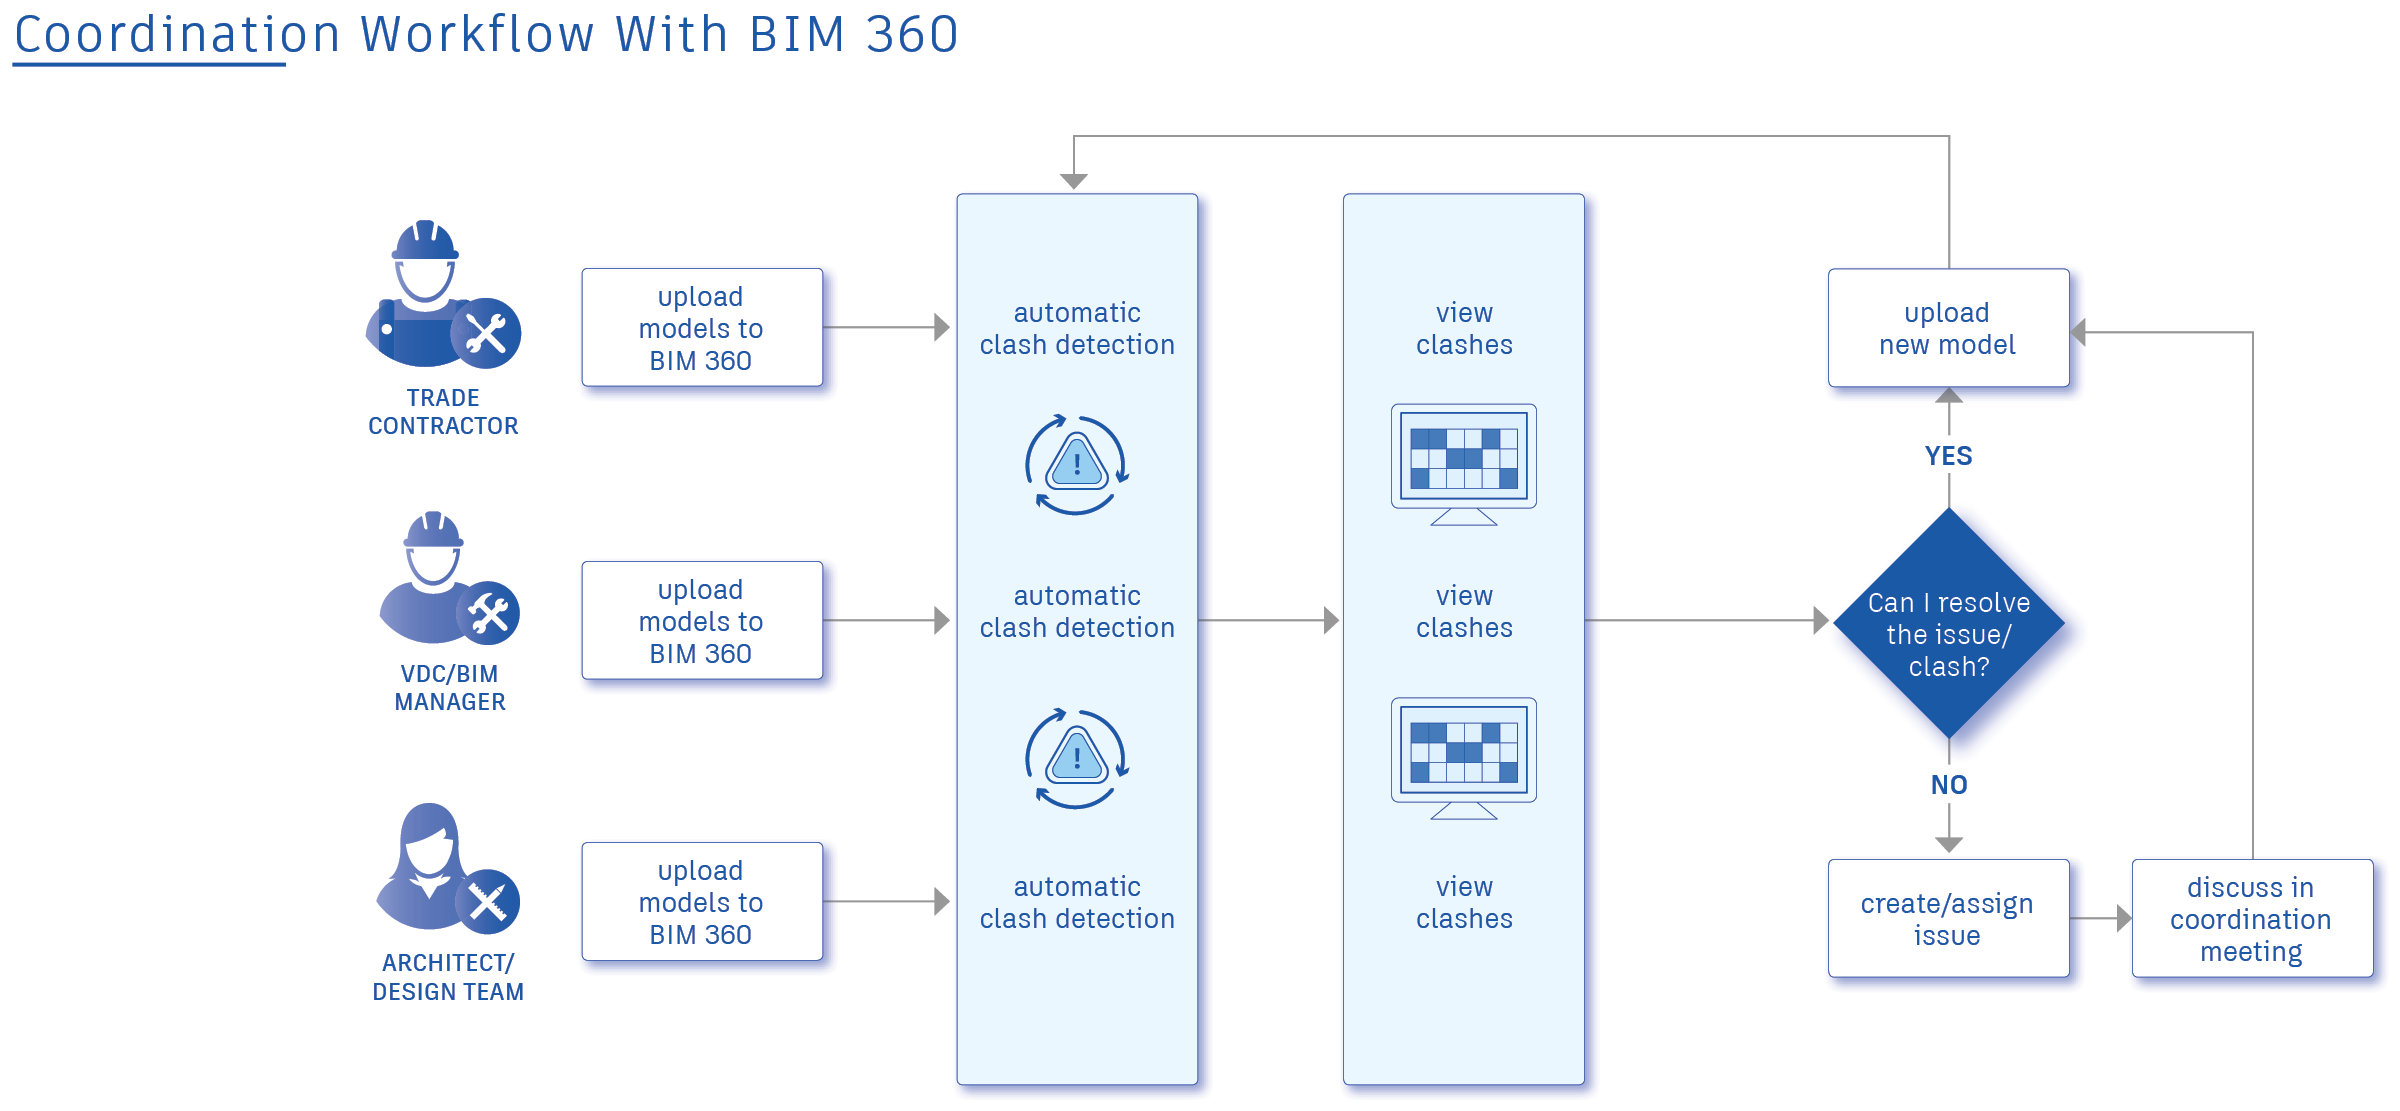 Coordination with BIM 360 Workflow